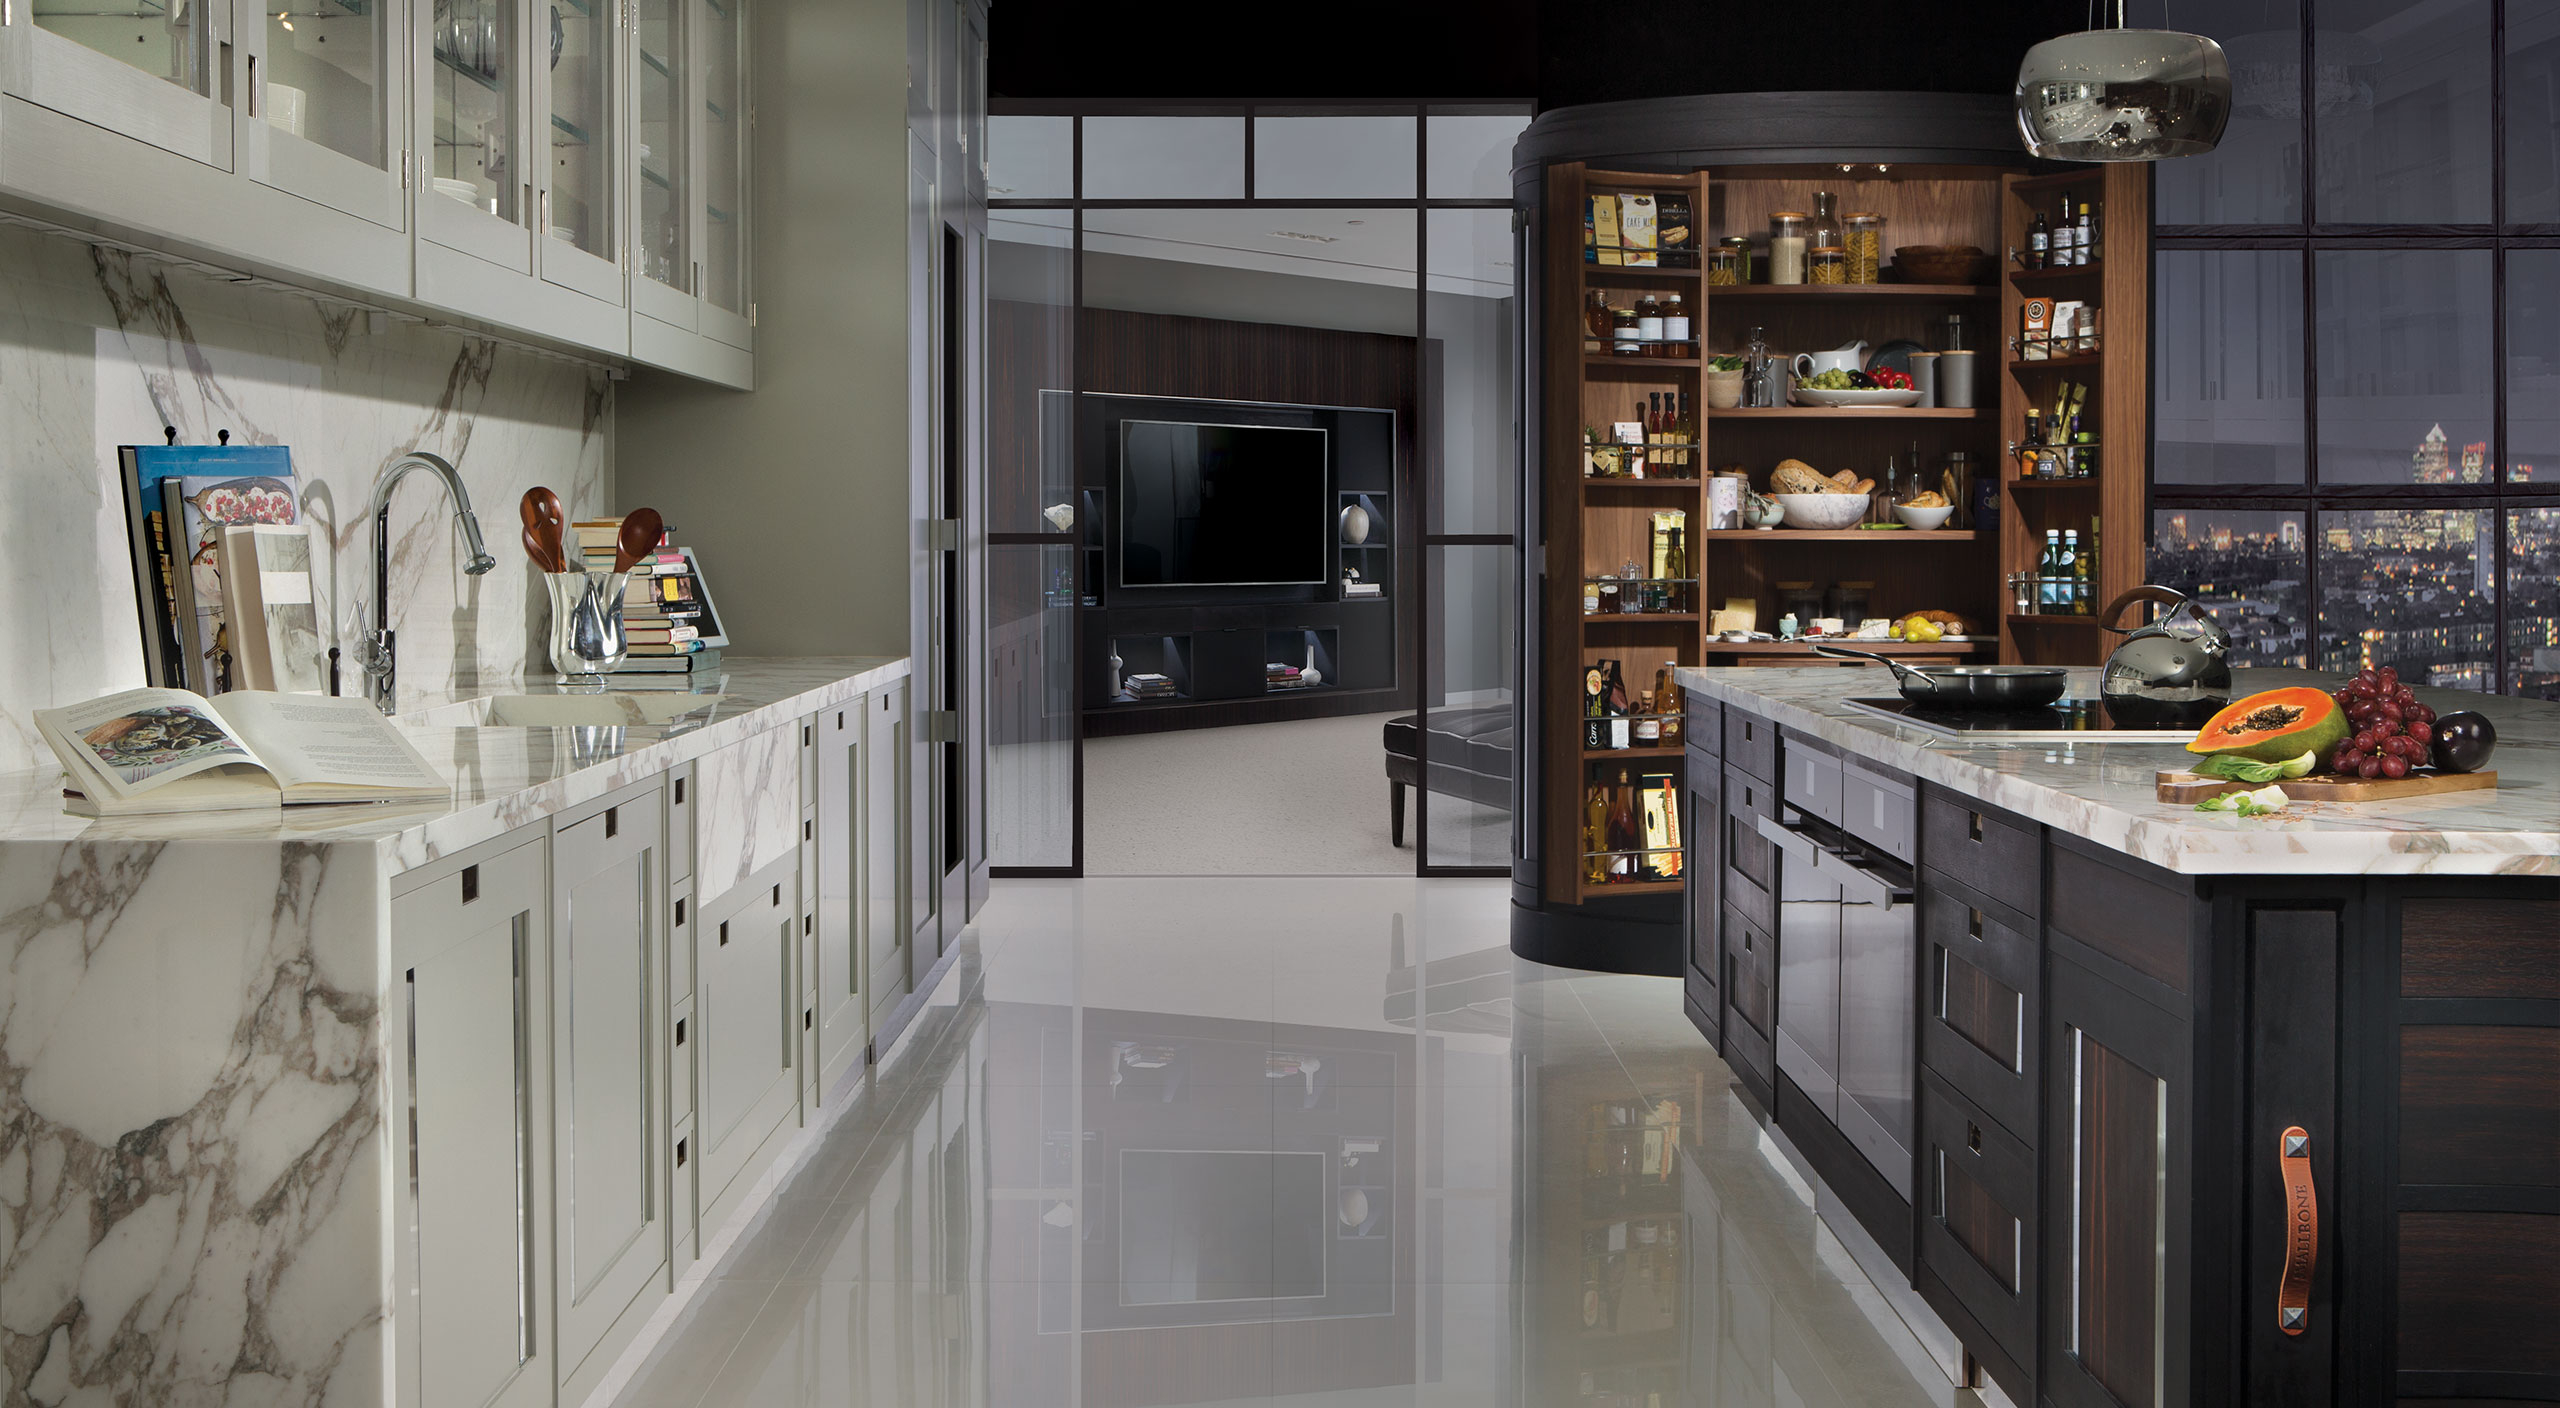 A Macassar kitchen by Smallbone with marble waterfall worktops and bespoke curved larder